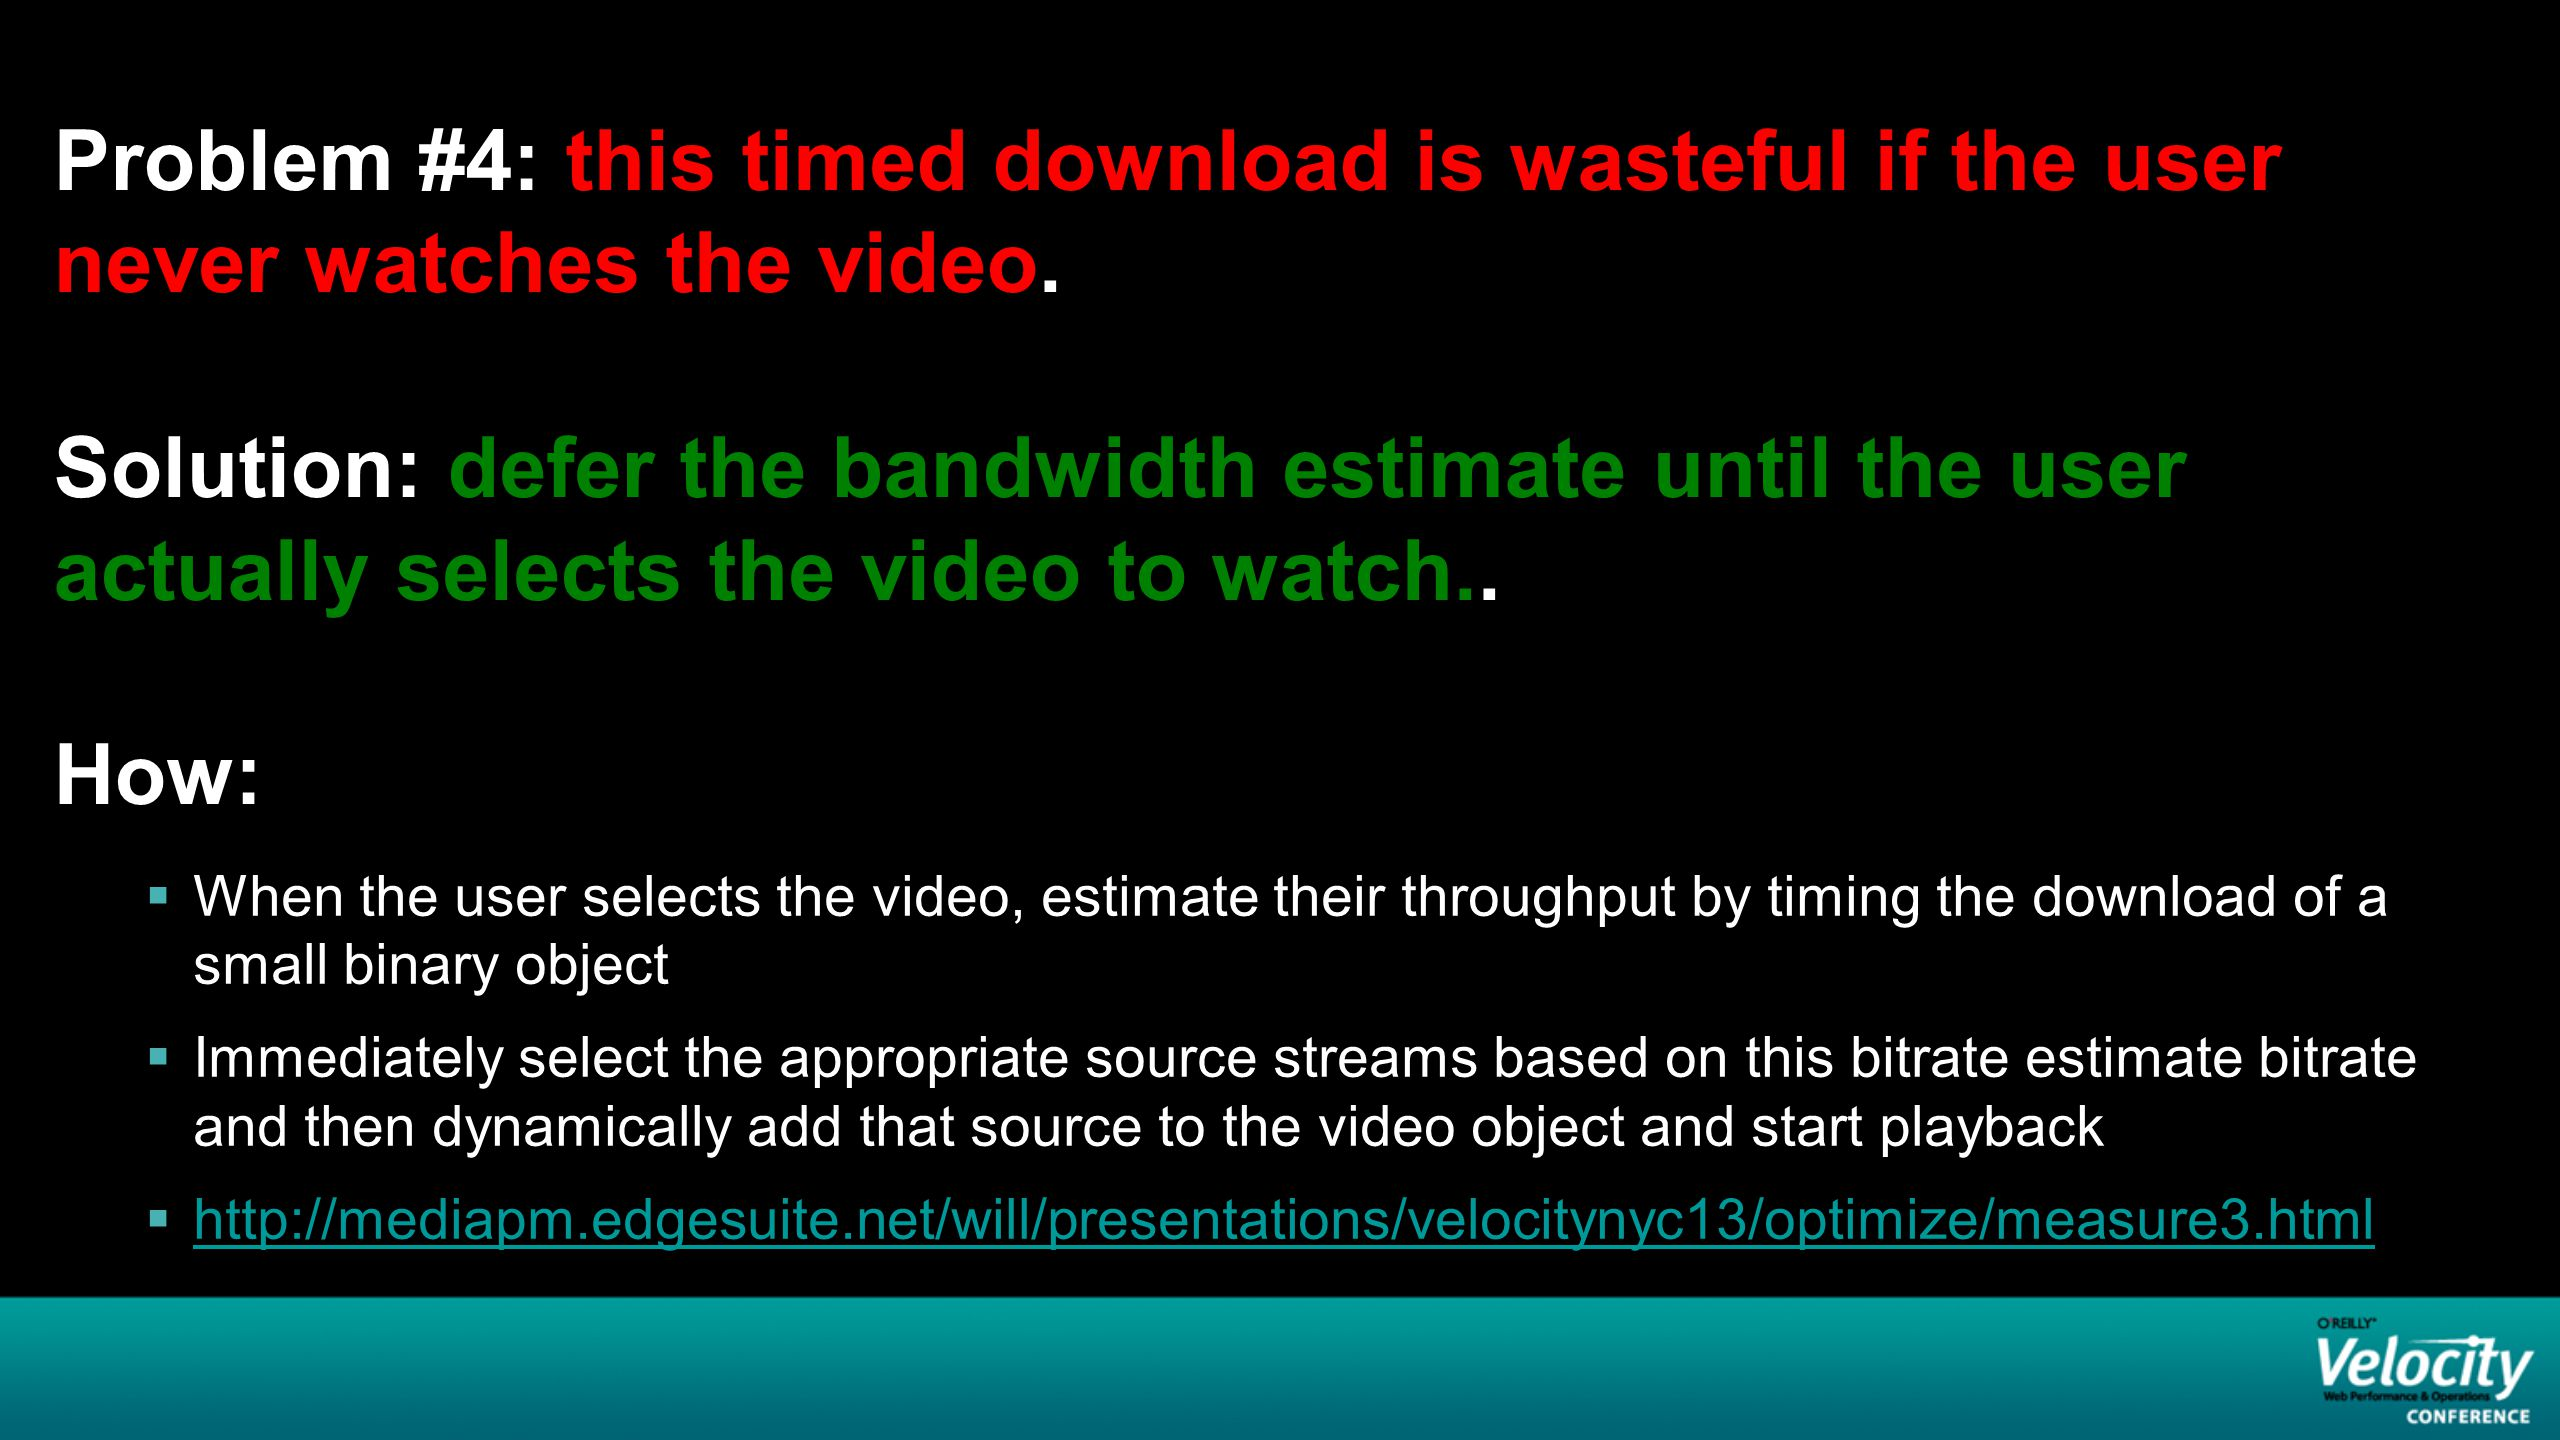 Problem #4: this timed download is wasteful if the user never watches the video.